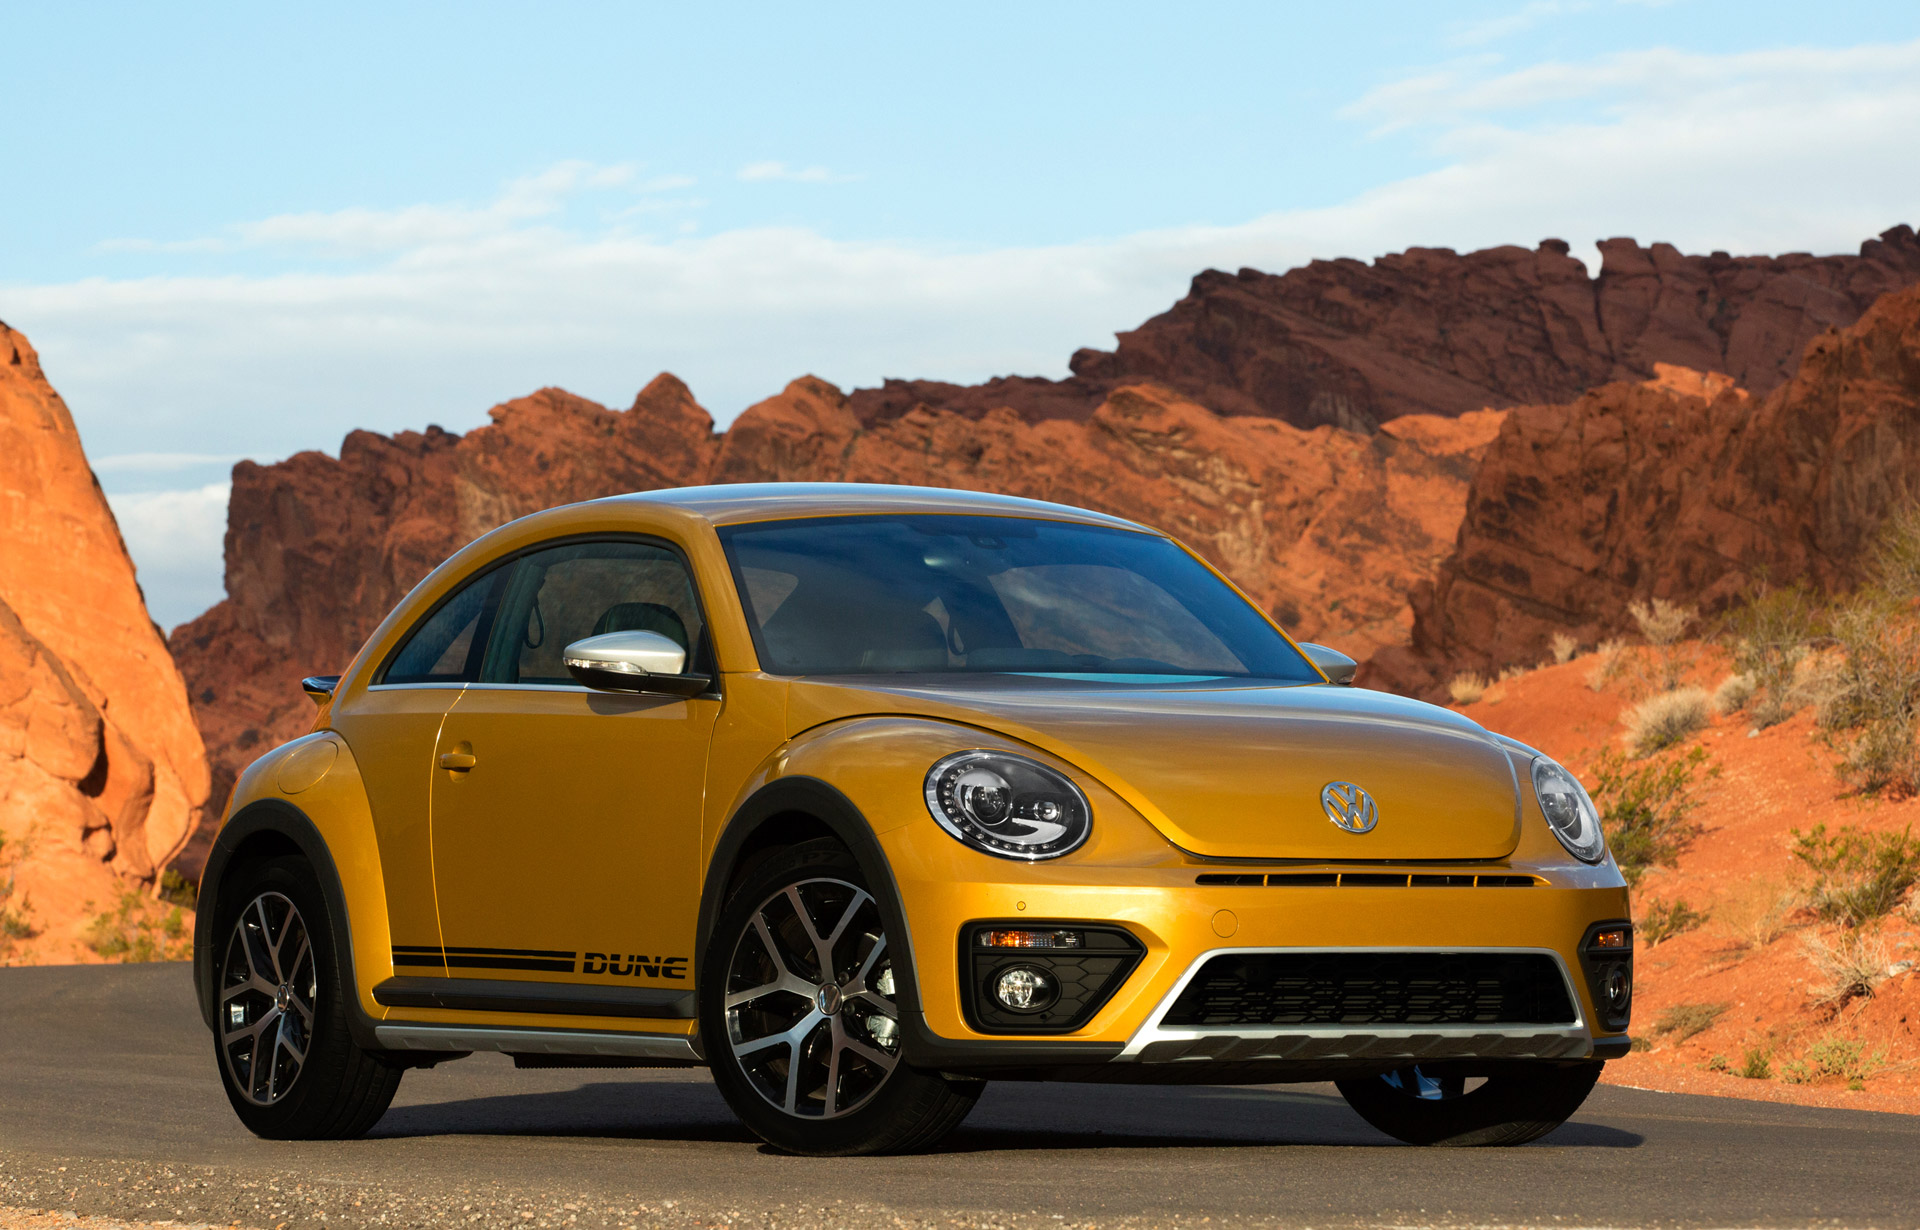 2016 Volkswagen Beetle Vw Gas Mileage The Car Connection